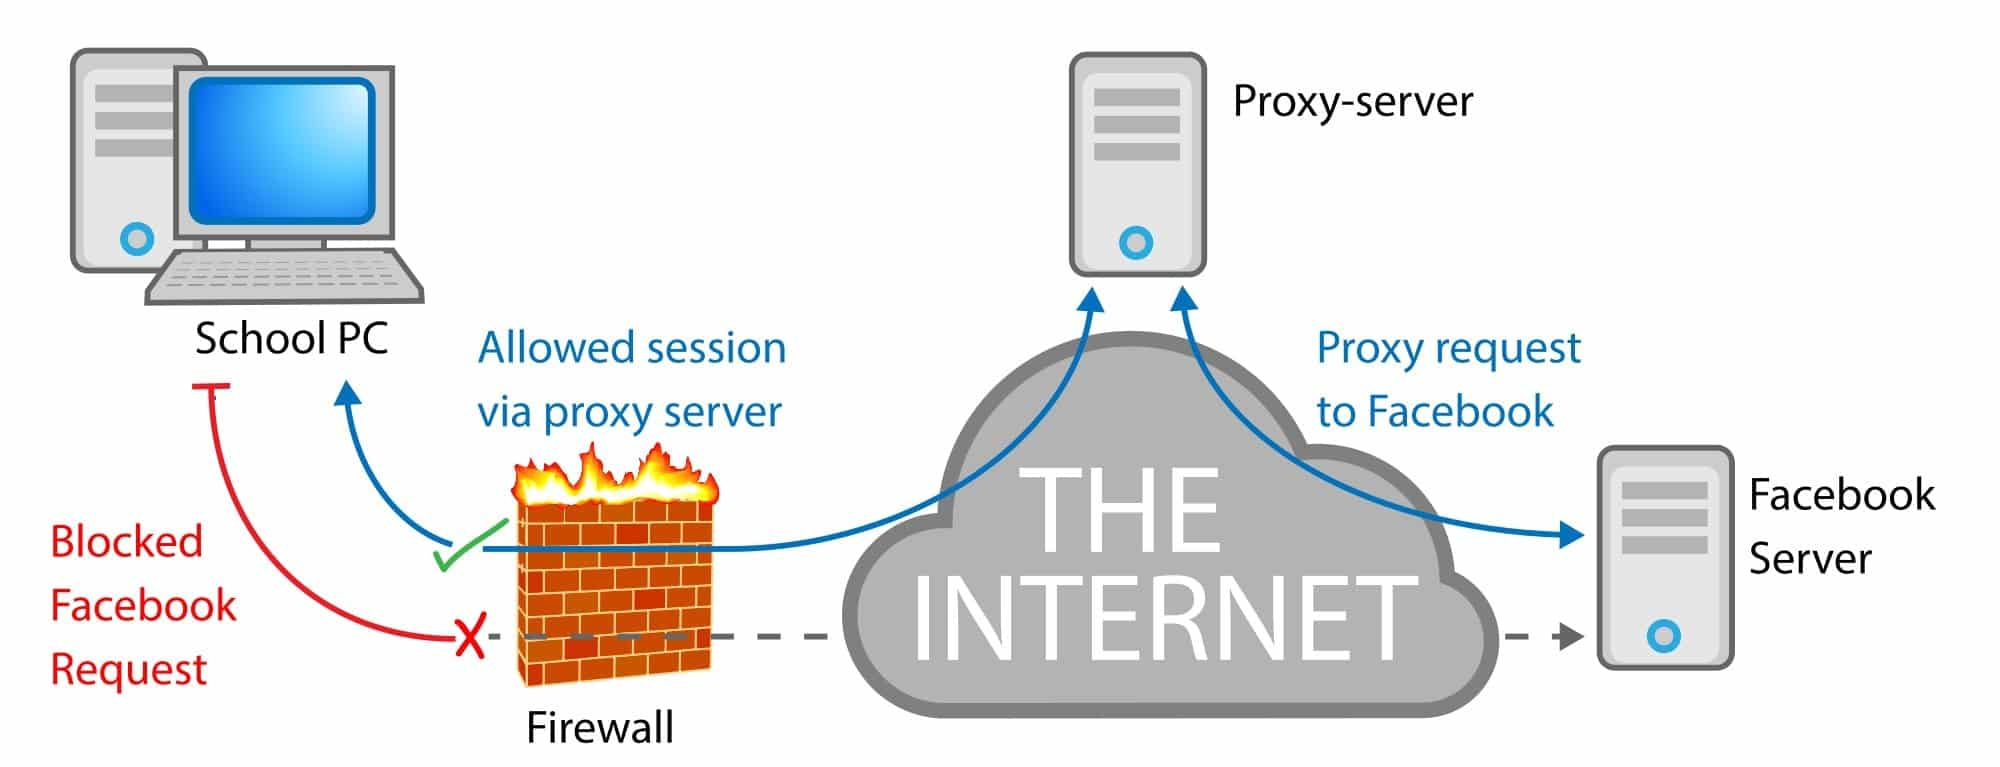 How Does the Webserver Work